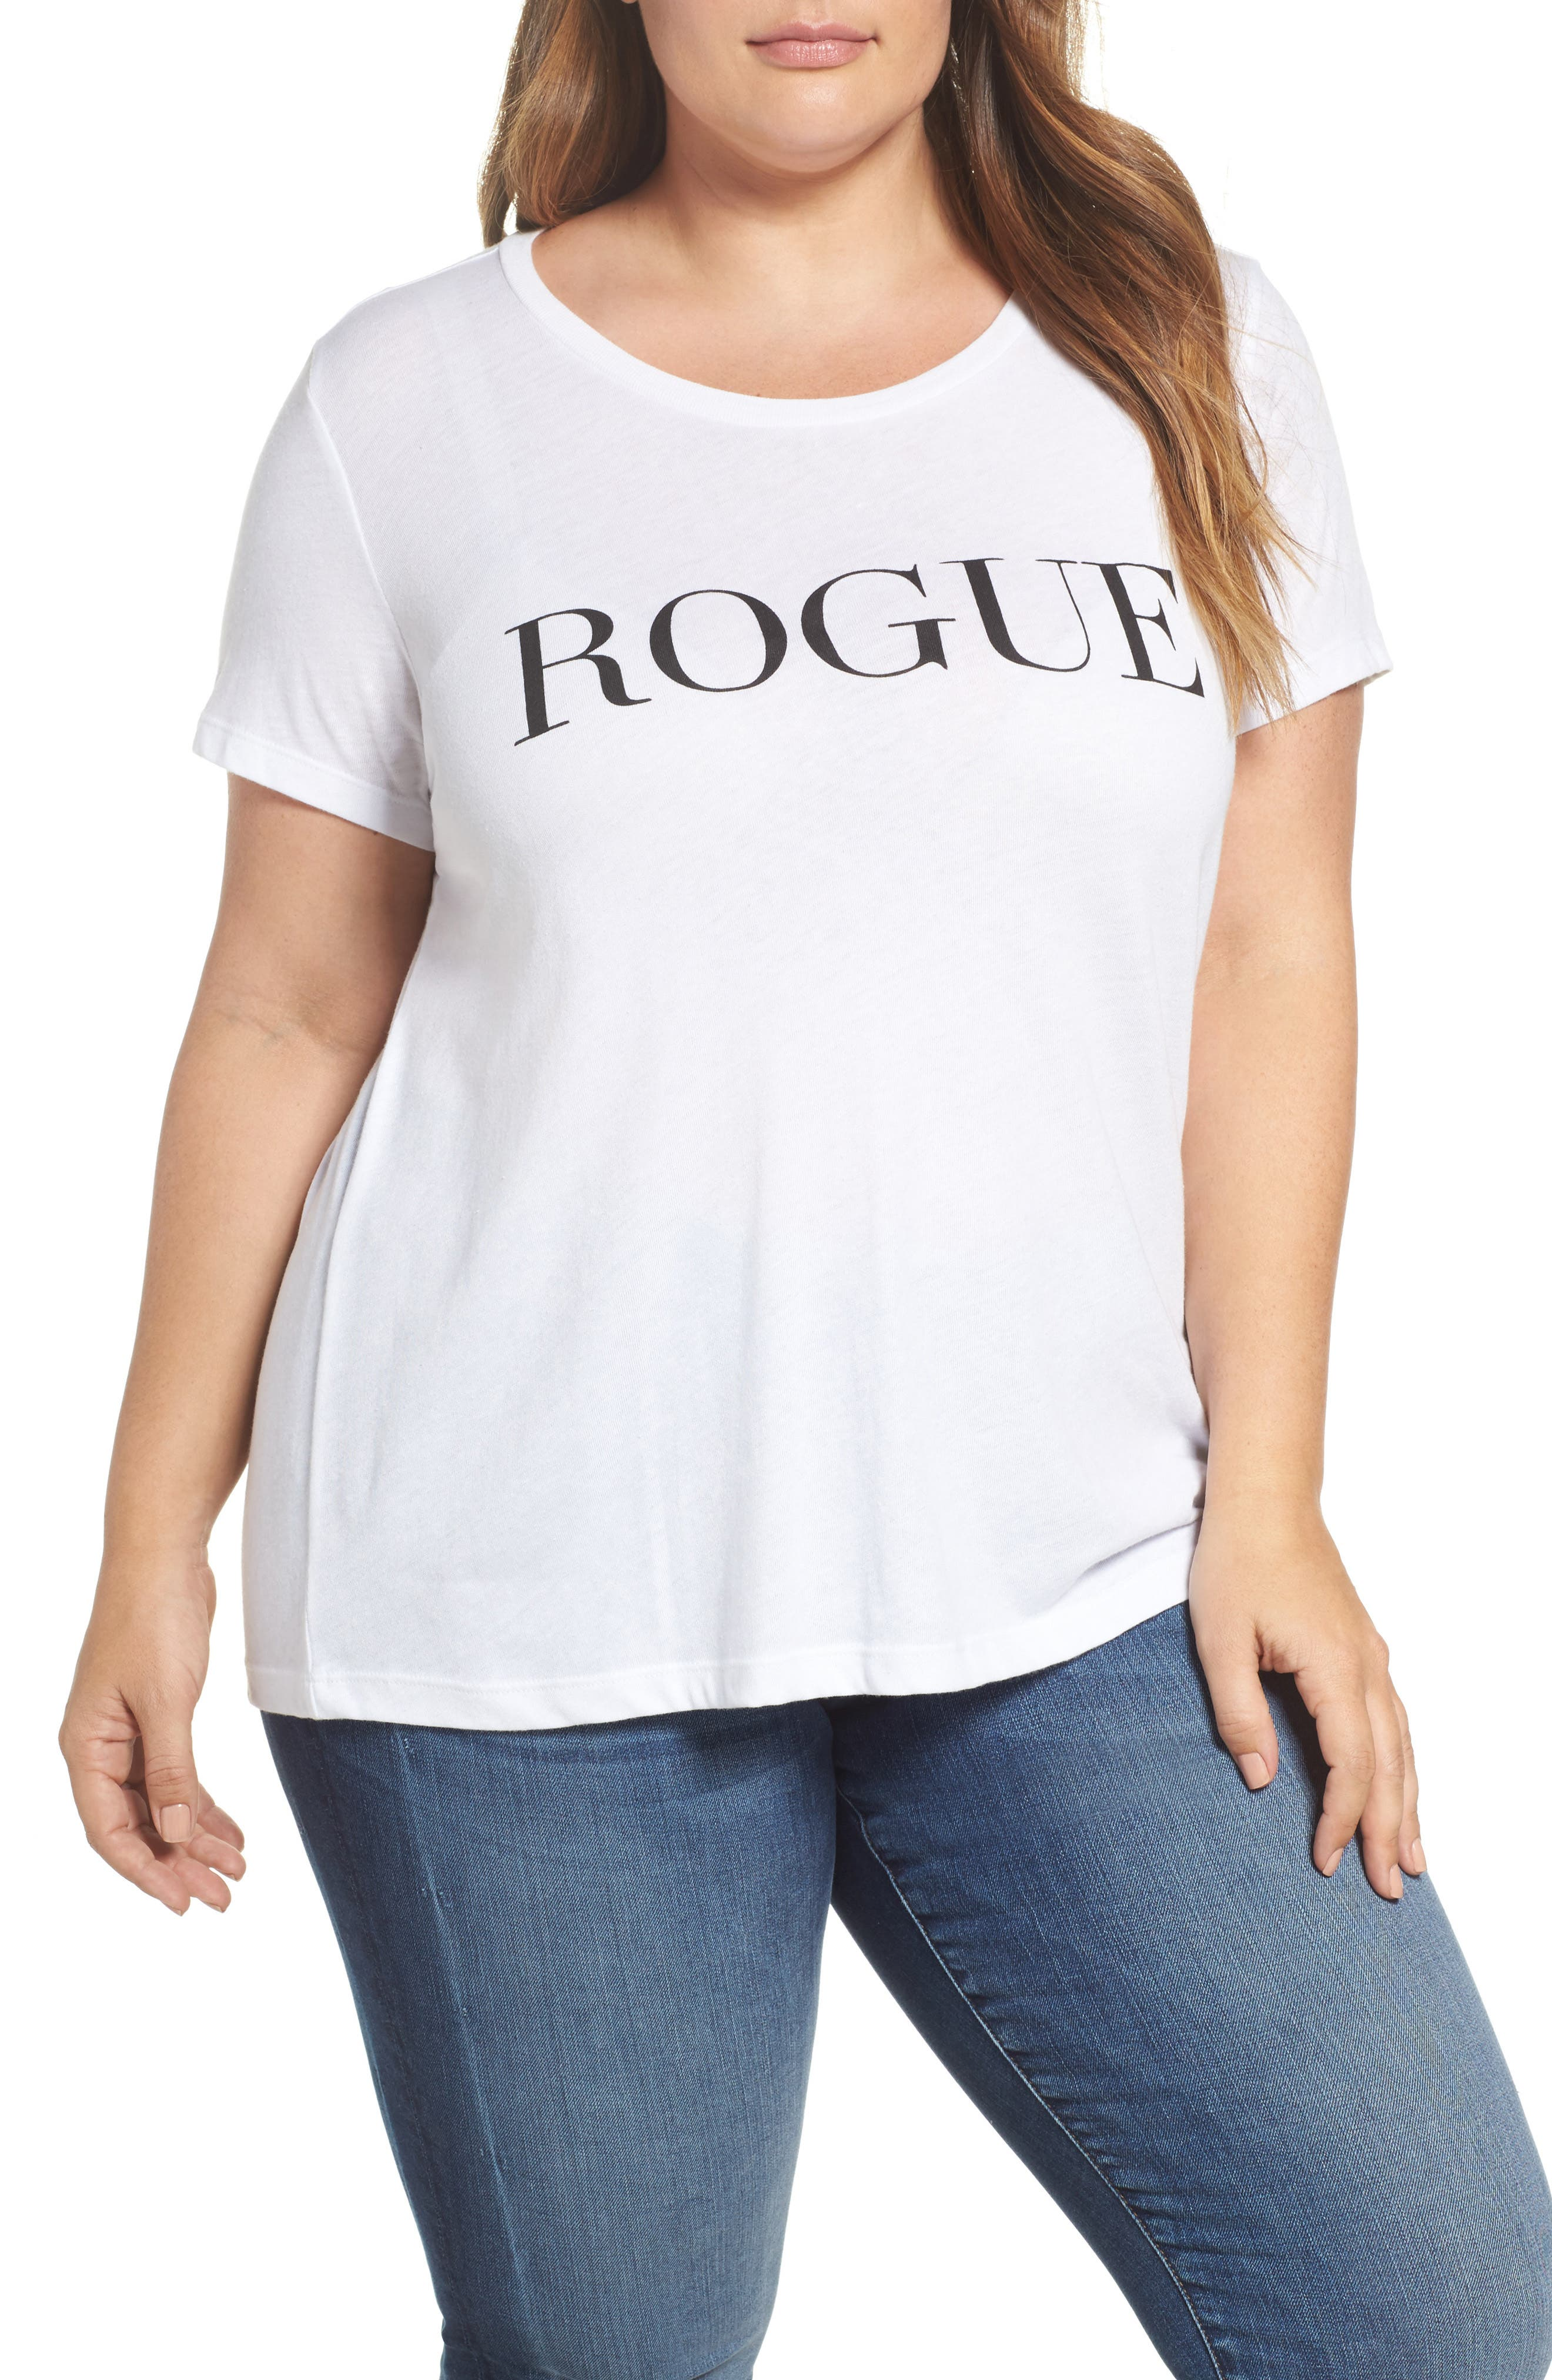 Rogue Graphic Tee,                         Main,                         color, White